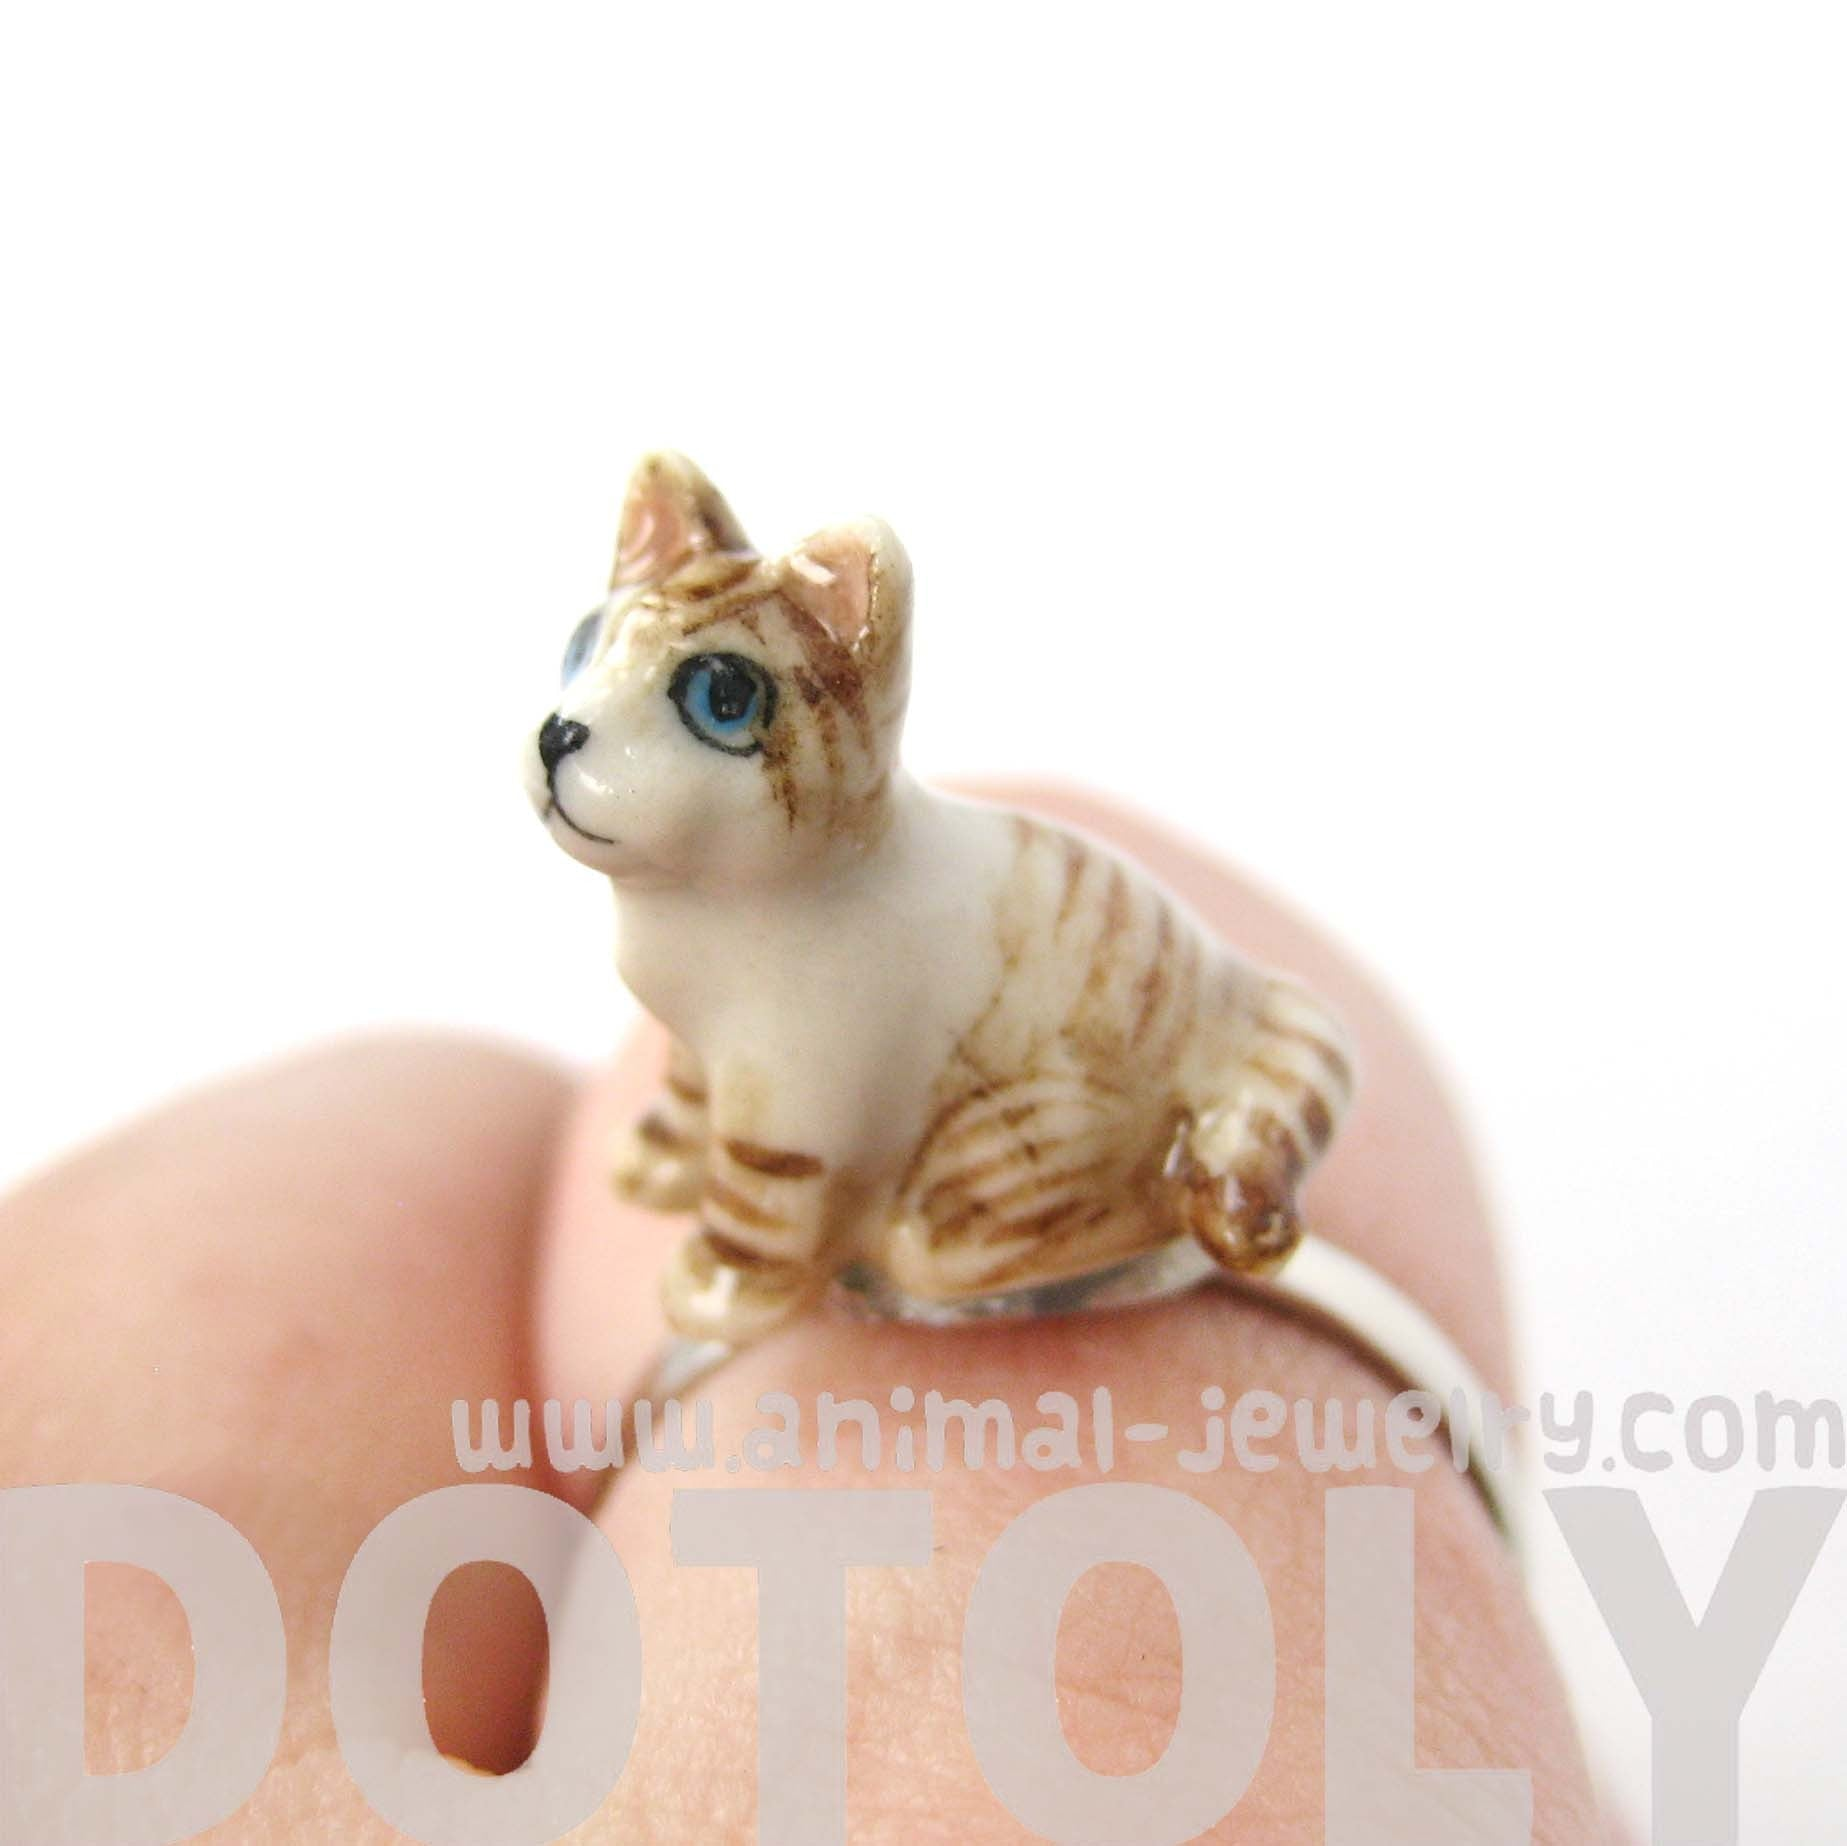 kitty-cat-shaped-porcelain-ceramic-animal-adjustable-ring-in-brown-and-white-handmade